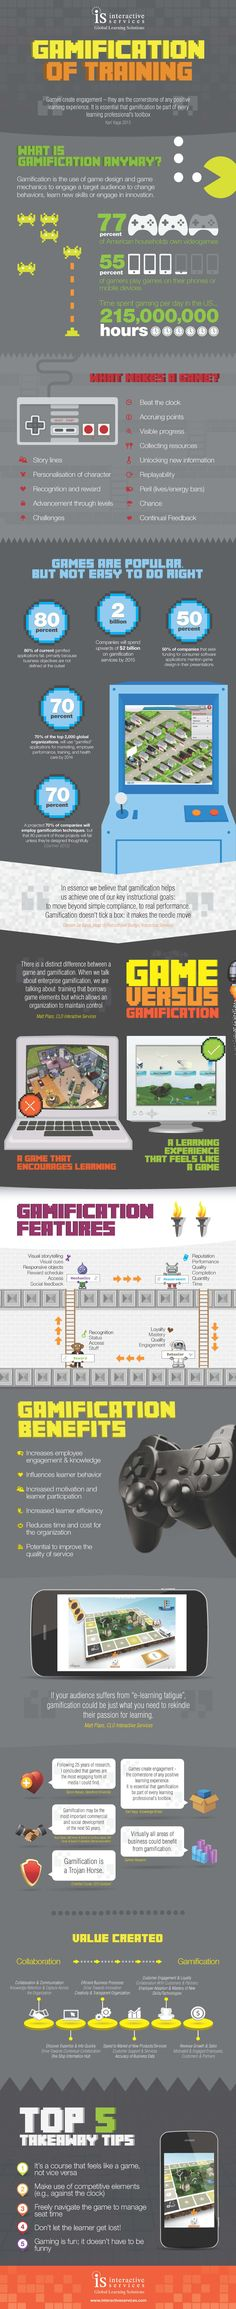 The Gamification of Training Infographic presents how gamification can be a highly engaging method of training employees and how it is being used to support performance initiatives. Educational Psychology, Educational Technology, Game Theory, Training And Development, Instructional Design, Blended Learning, Business Management, Human Resources, Marketing